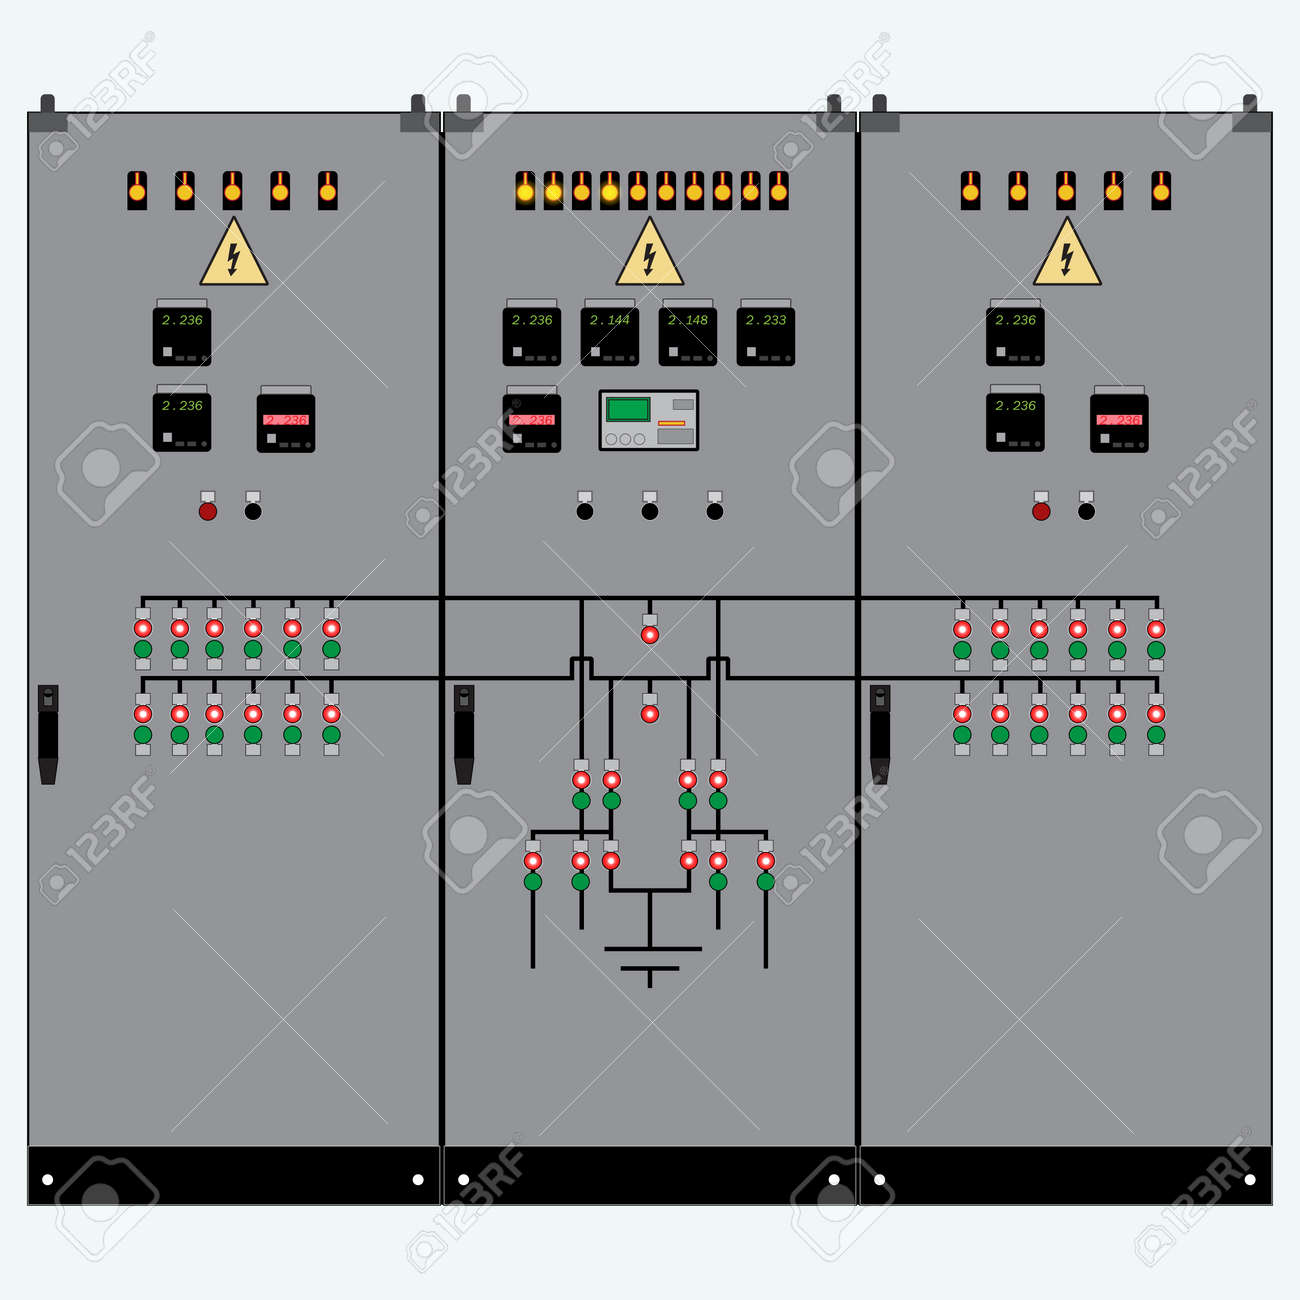 High Voltage Electric Meter Not Lossing Wiring Diagram Transformer Picture Of The Electrical Panel And Circuit Breakers Rh 123rf Com Cigarette Lighter